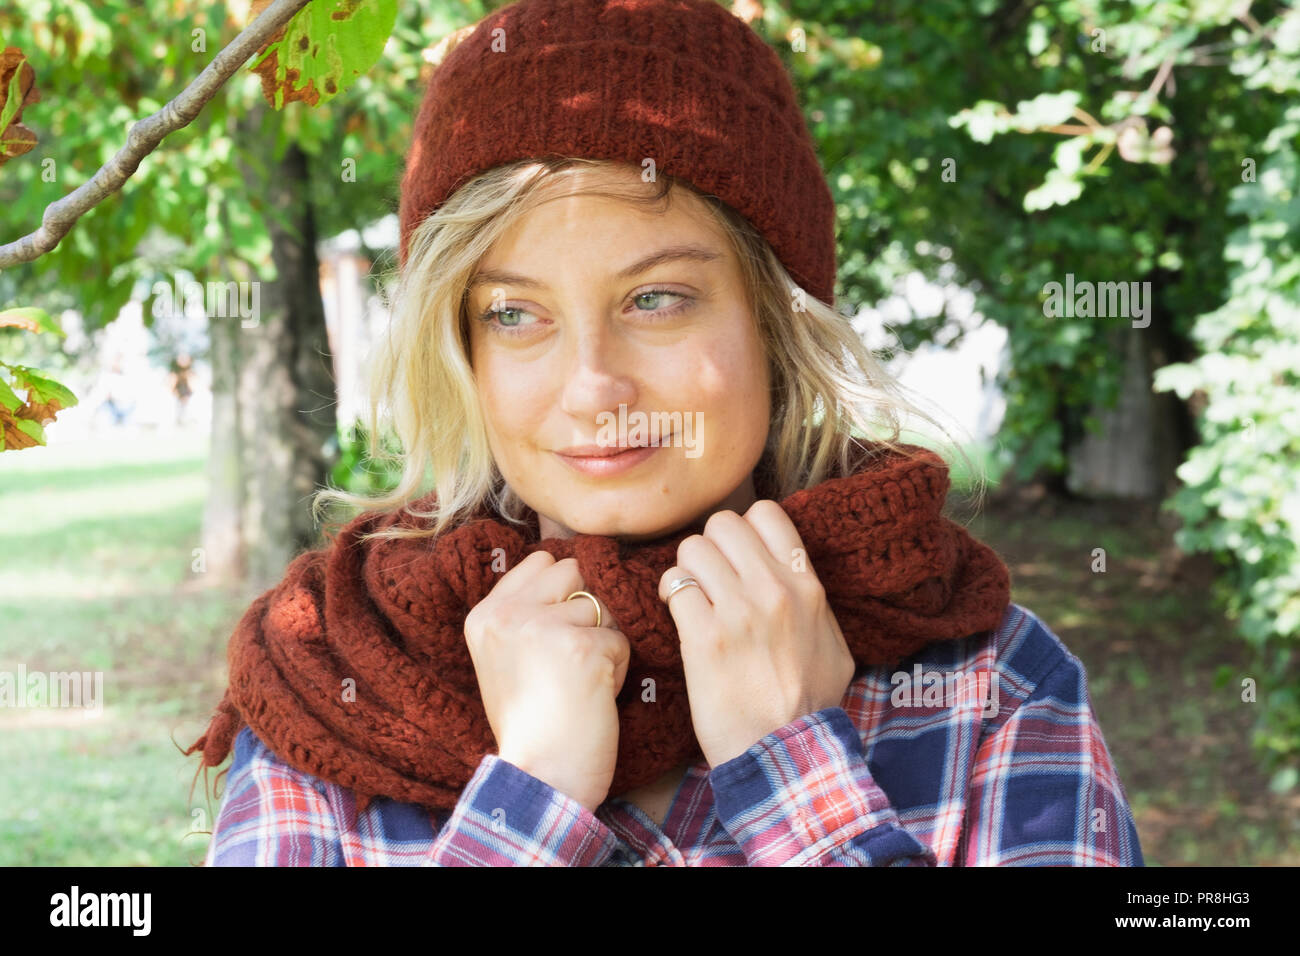 Girl during cold day wearing warm clothes outdoor - Stock Image